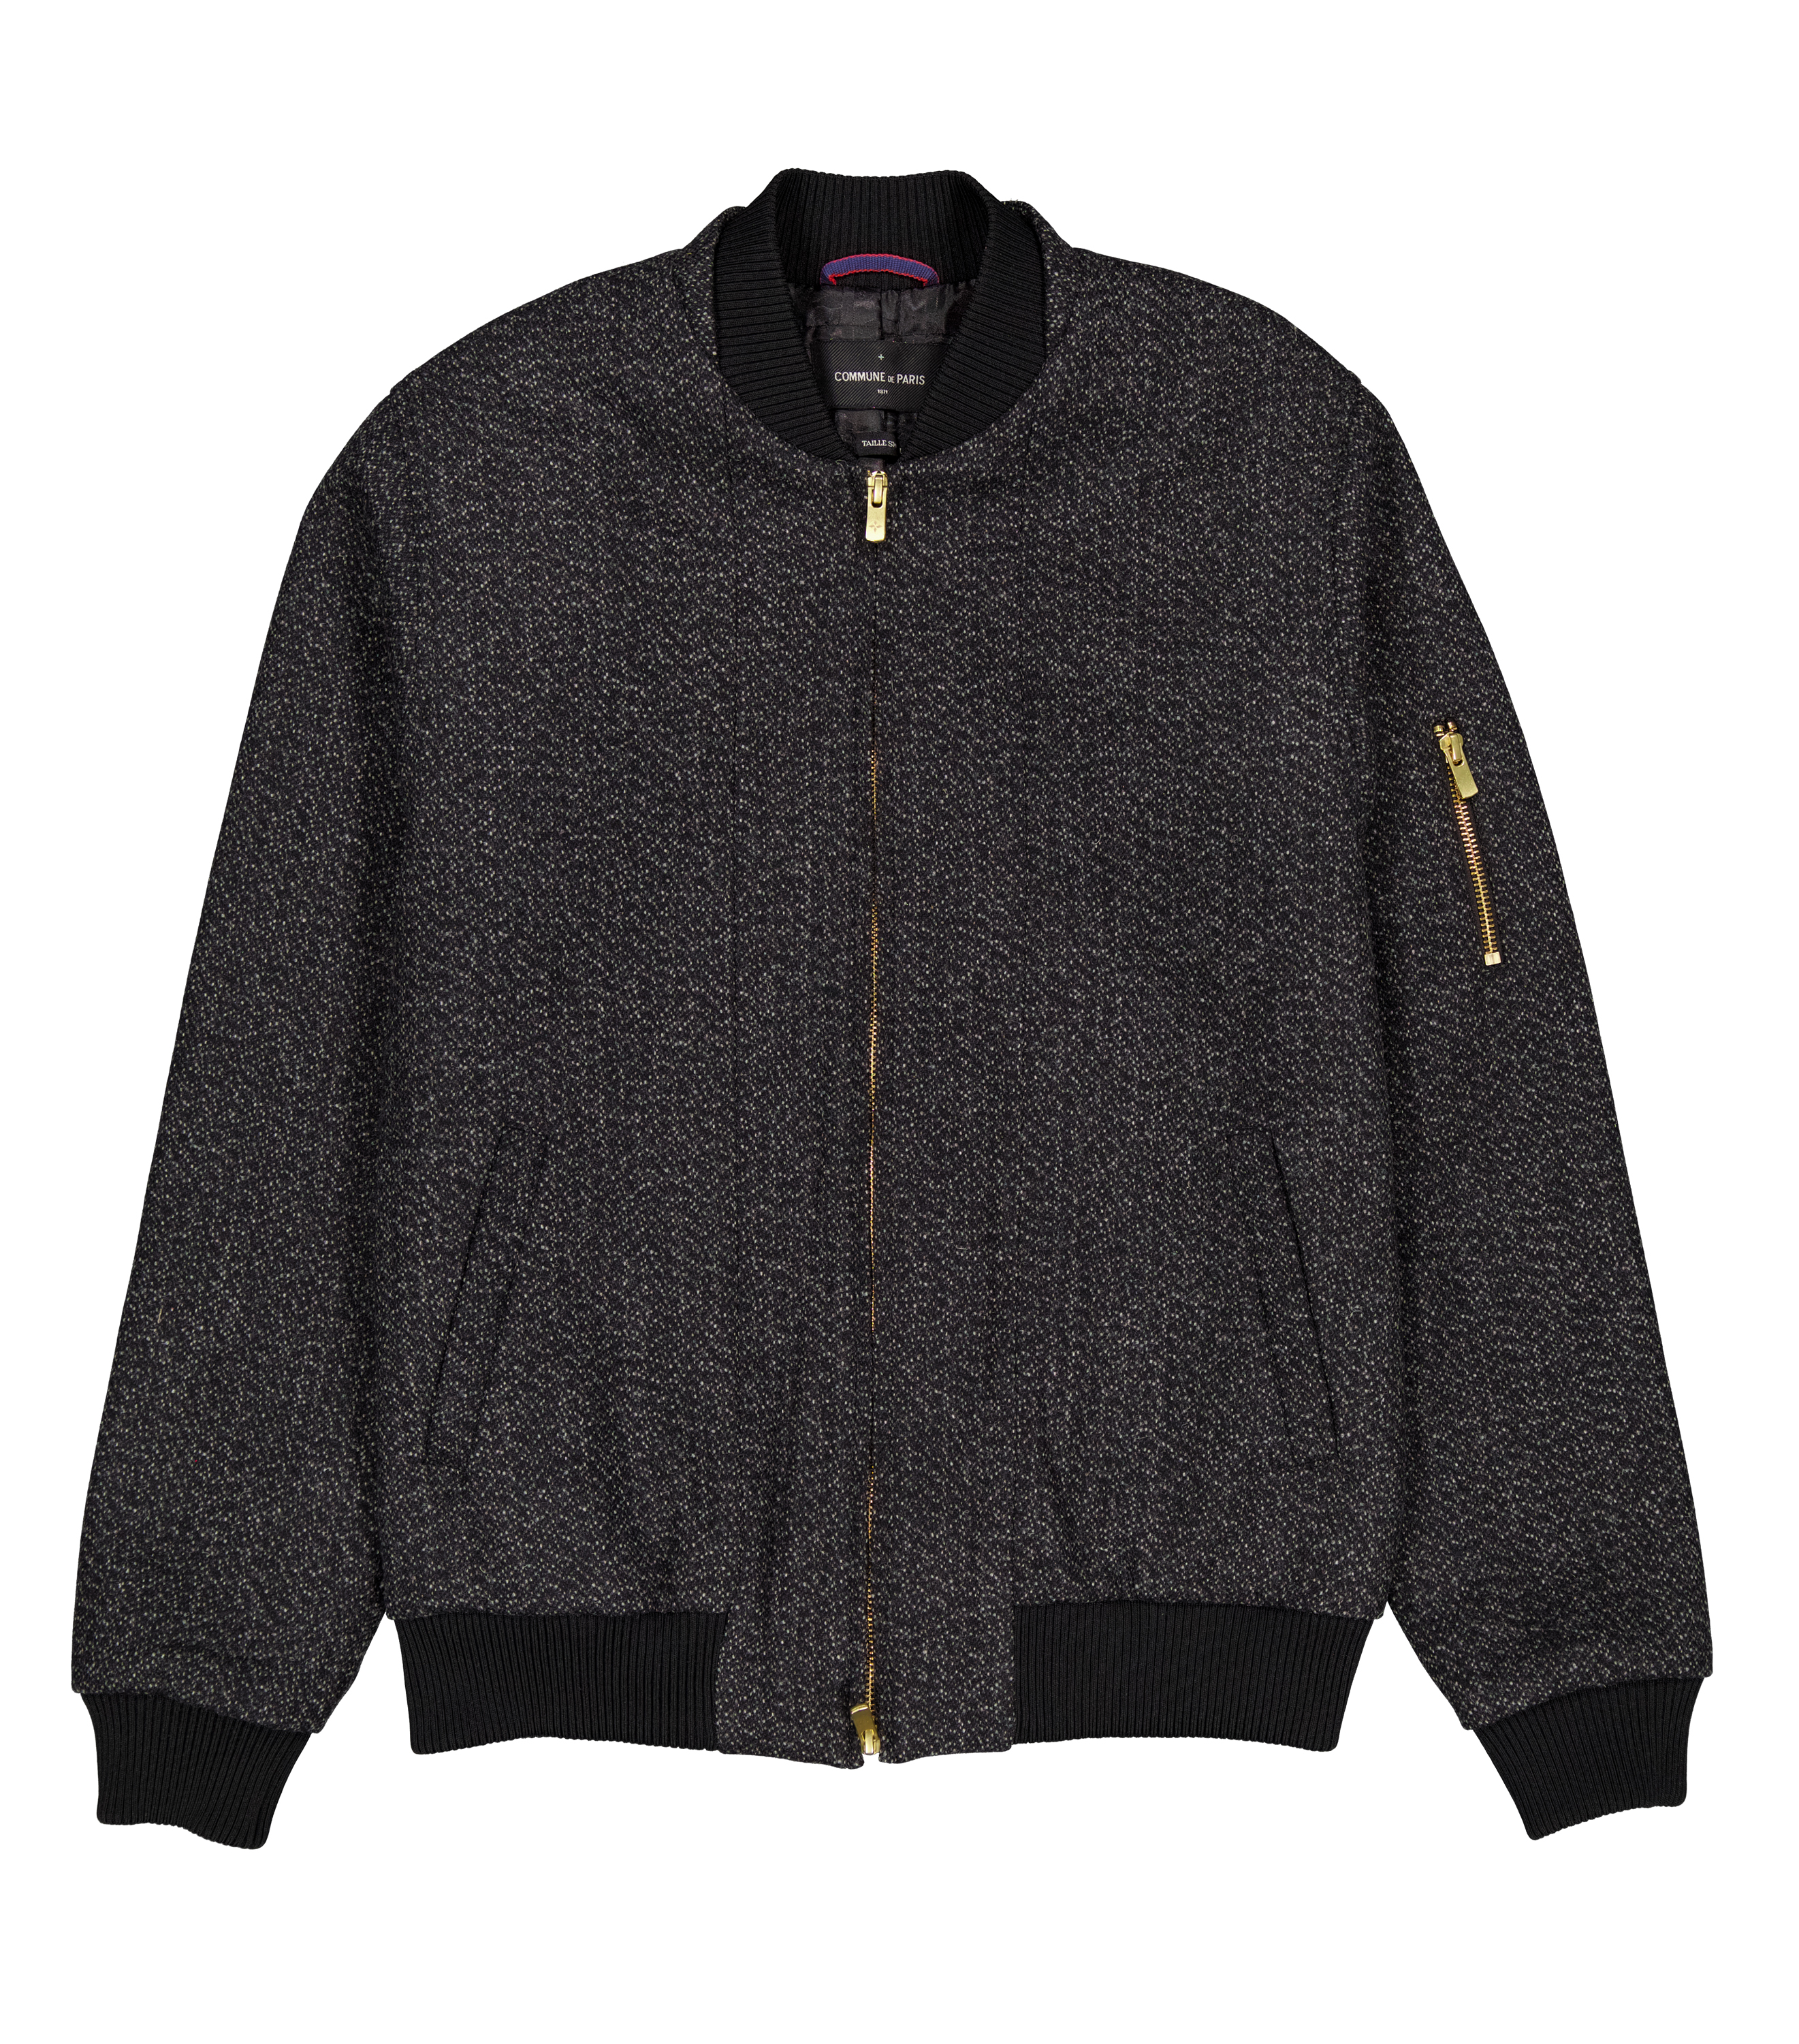 JACKET ANATOLE19-GT - Grey tweed